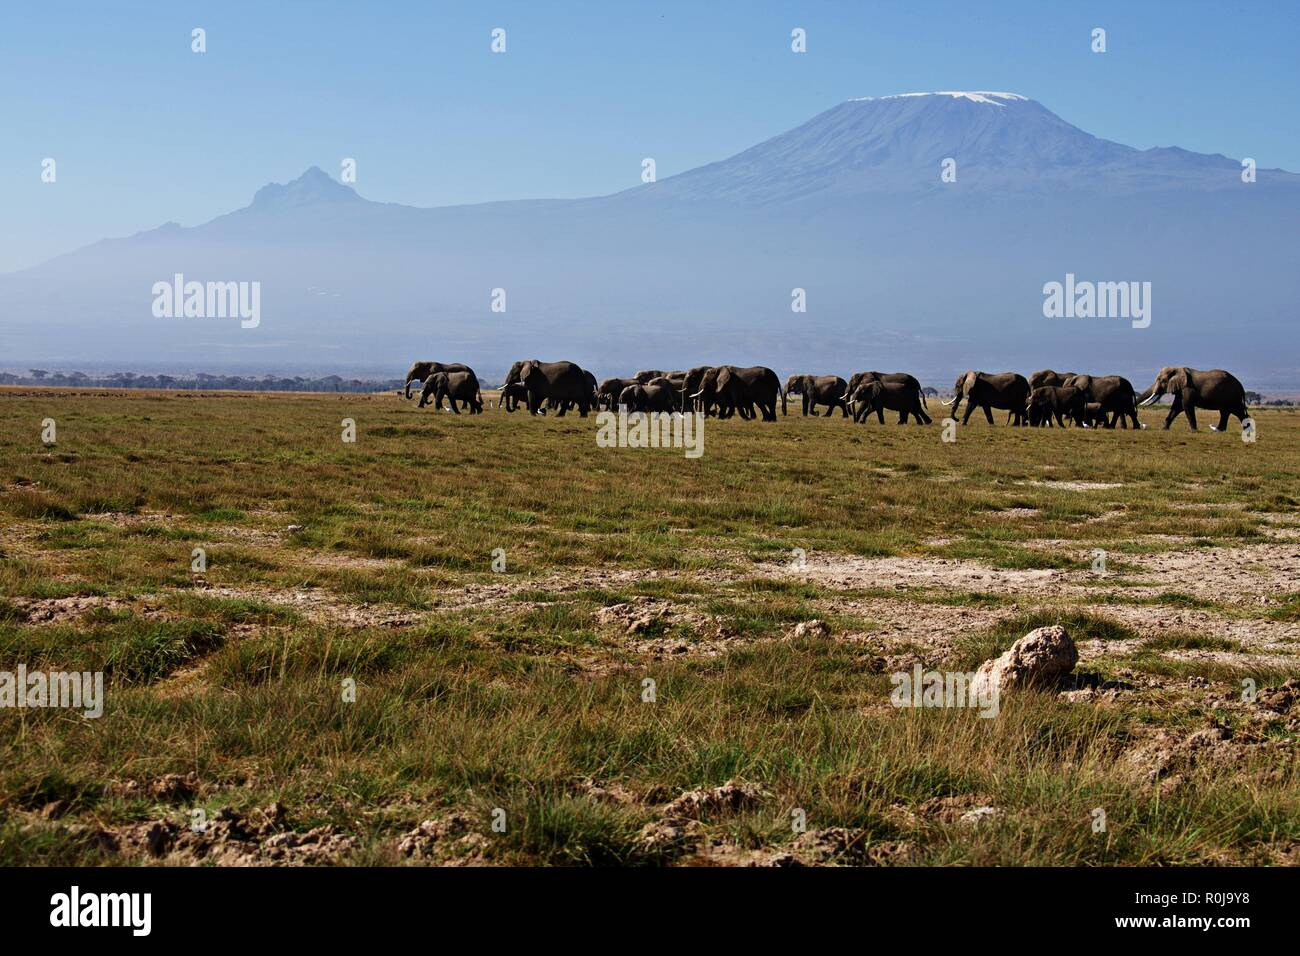 Stunning view of Elephant Herd grazing at Amboseli national park ,KIlimajaro mountain on background, Blue clear sky. - Stock Image